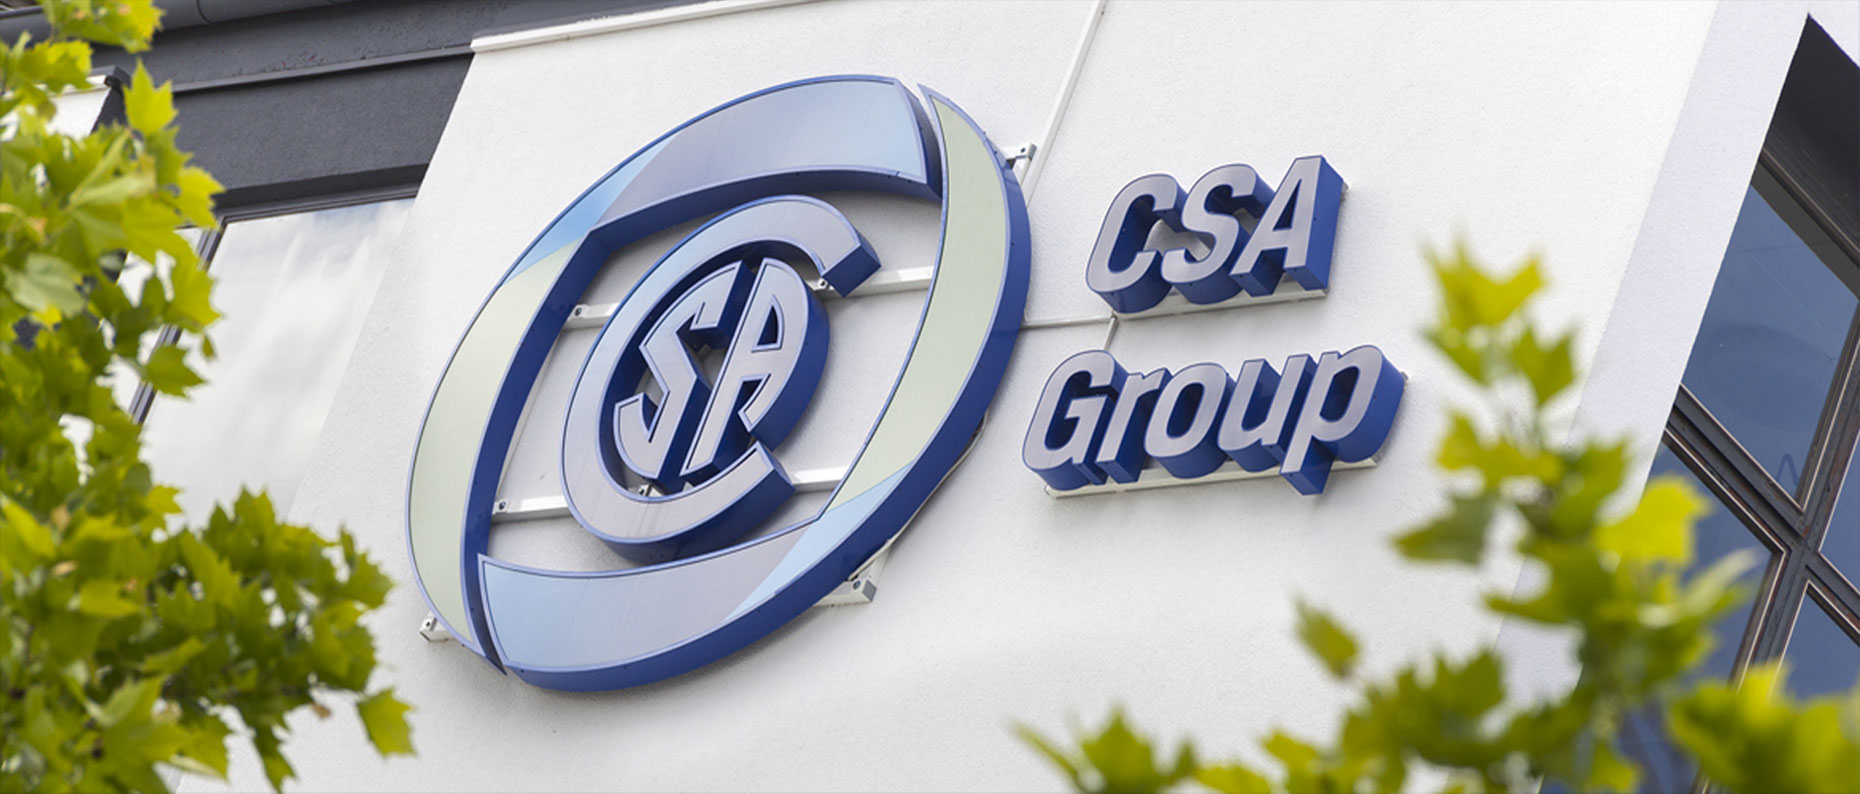 CSA Group: A digital presence that sets the standard